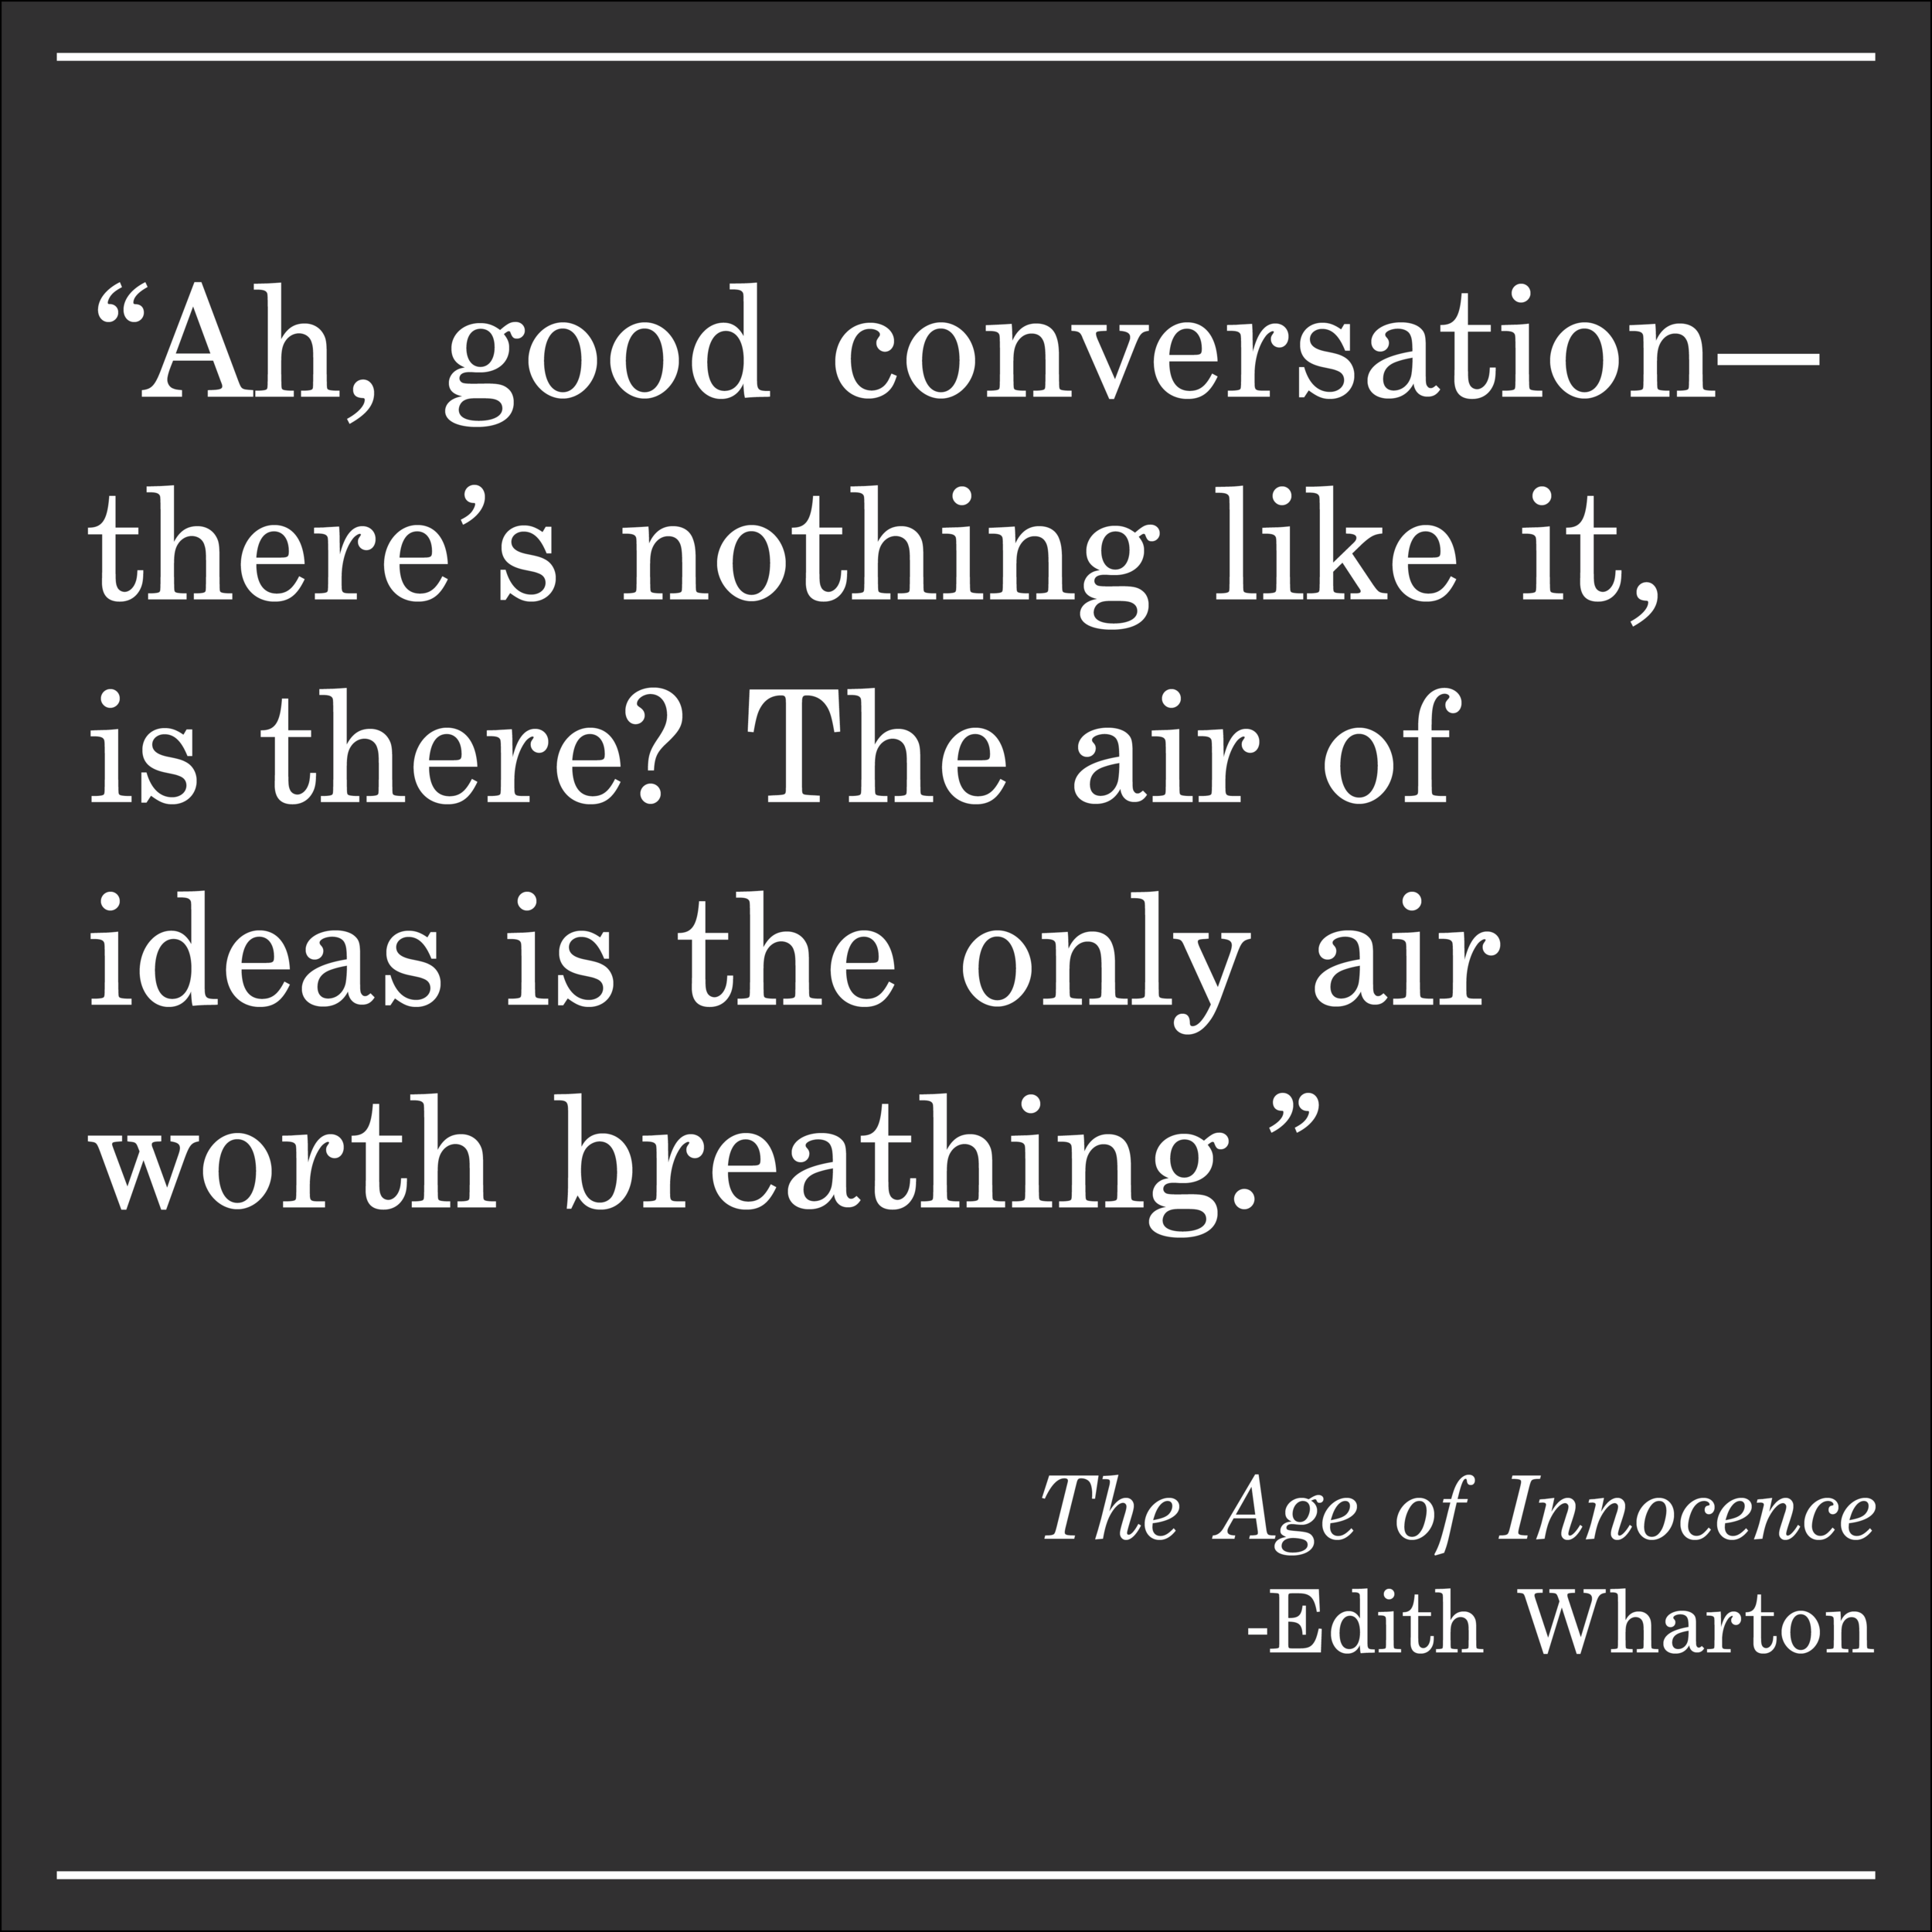 Daily Quote The Age of Innocence Edith Wharton